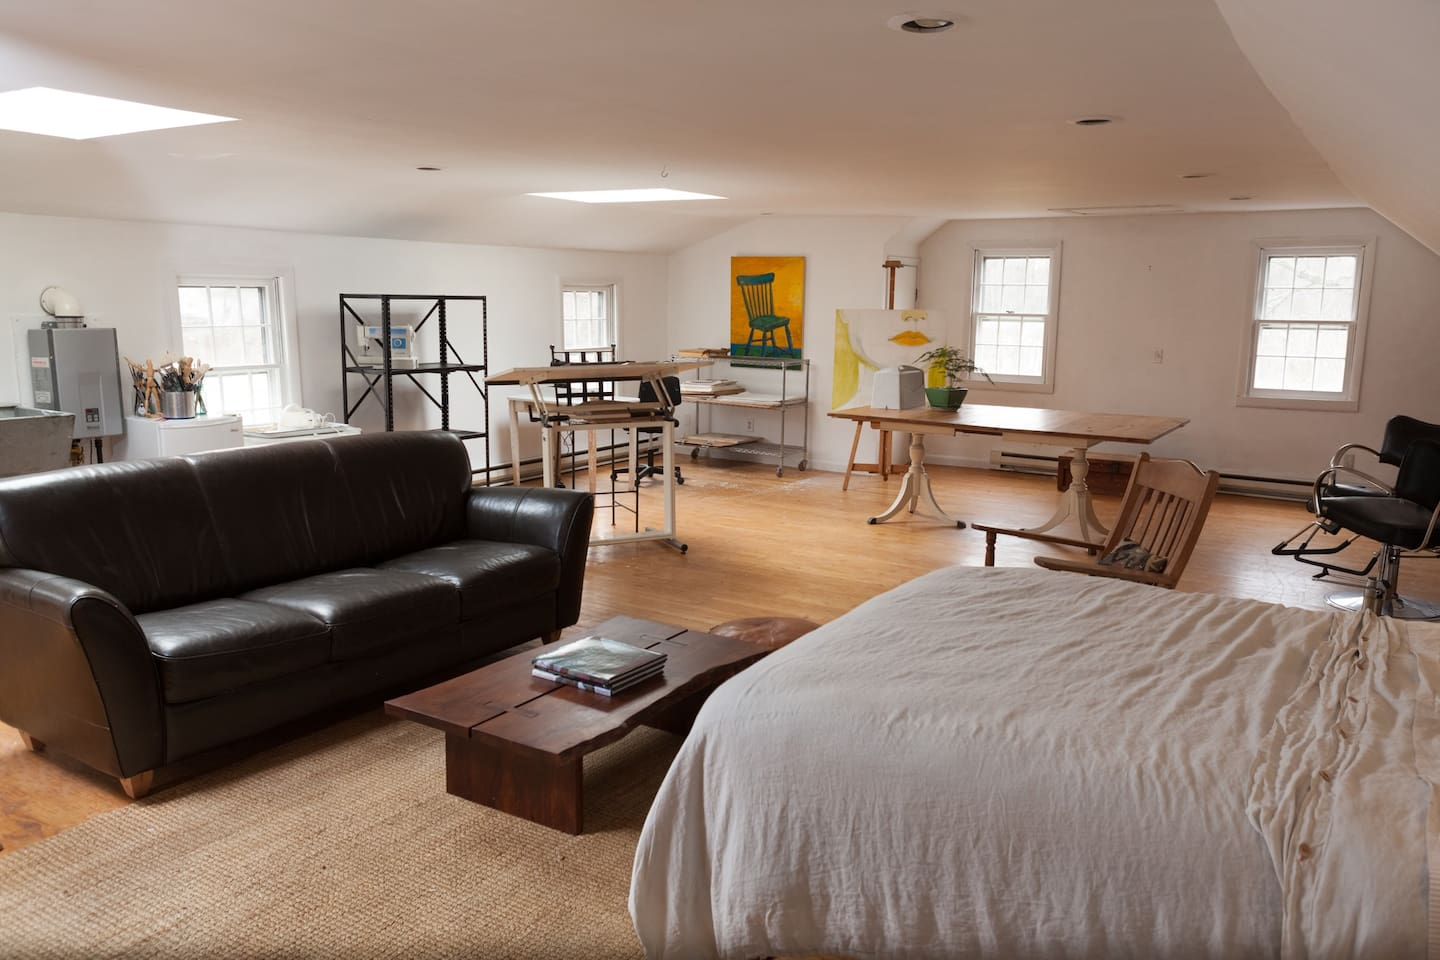 Spacious Art Studio/Apartment. Enjoy the atmosphere or dig in and create your own art.